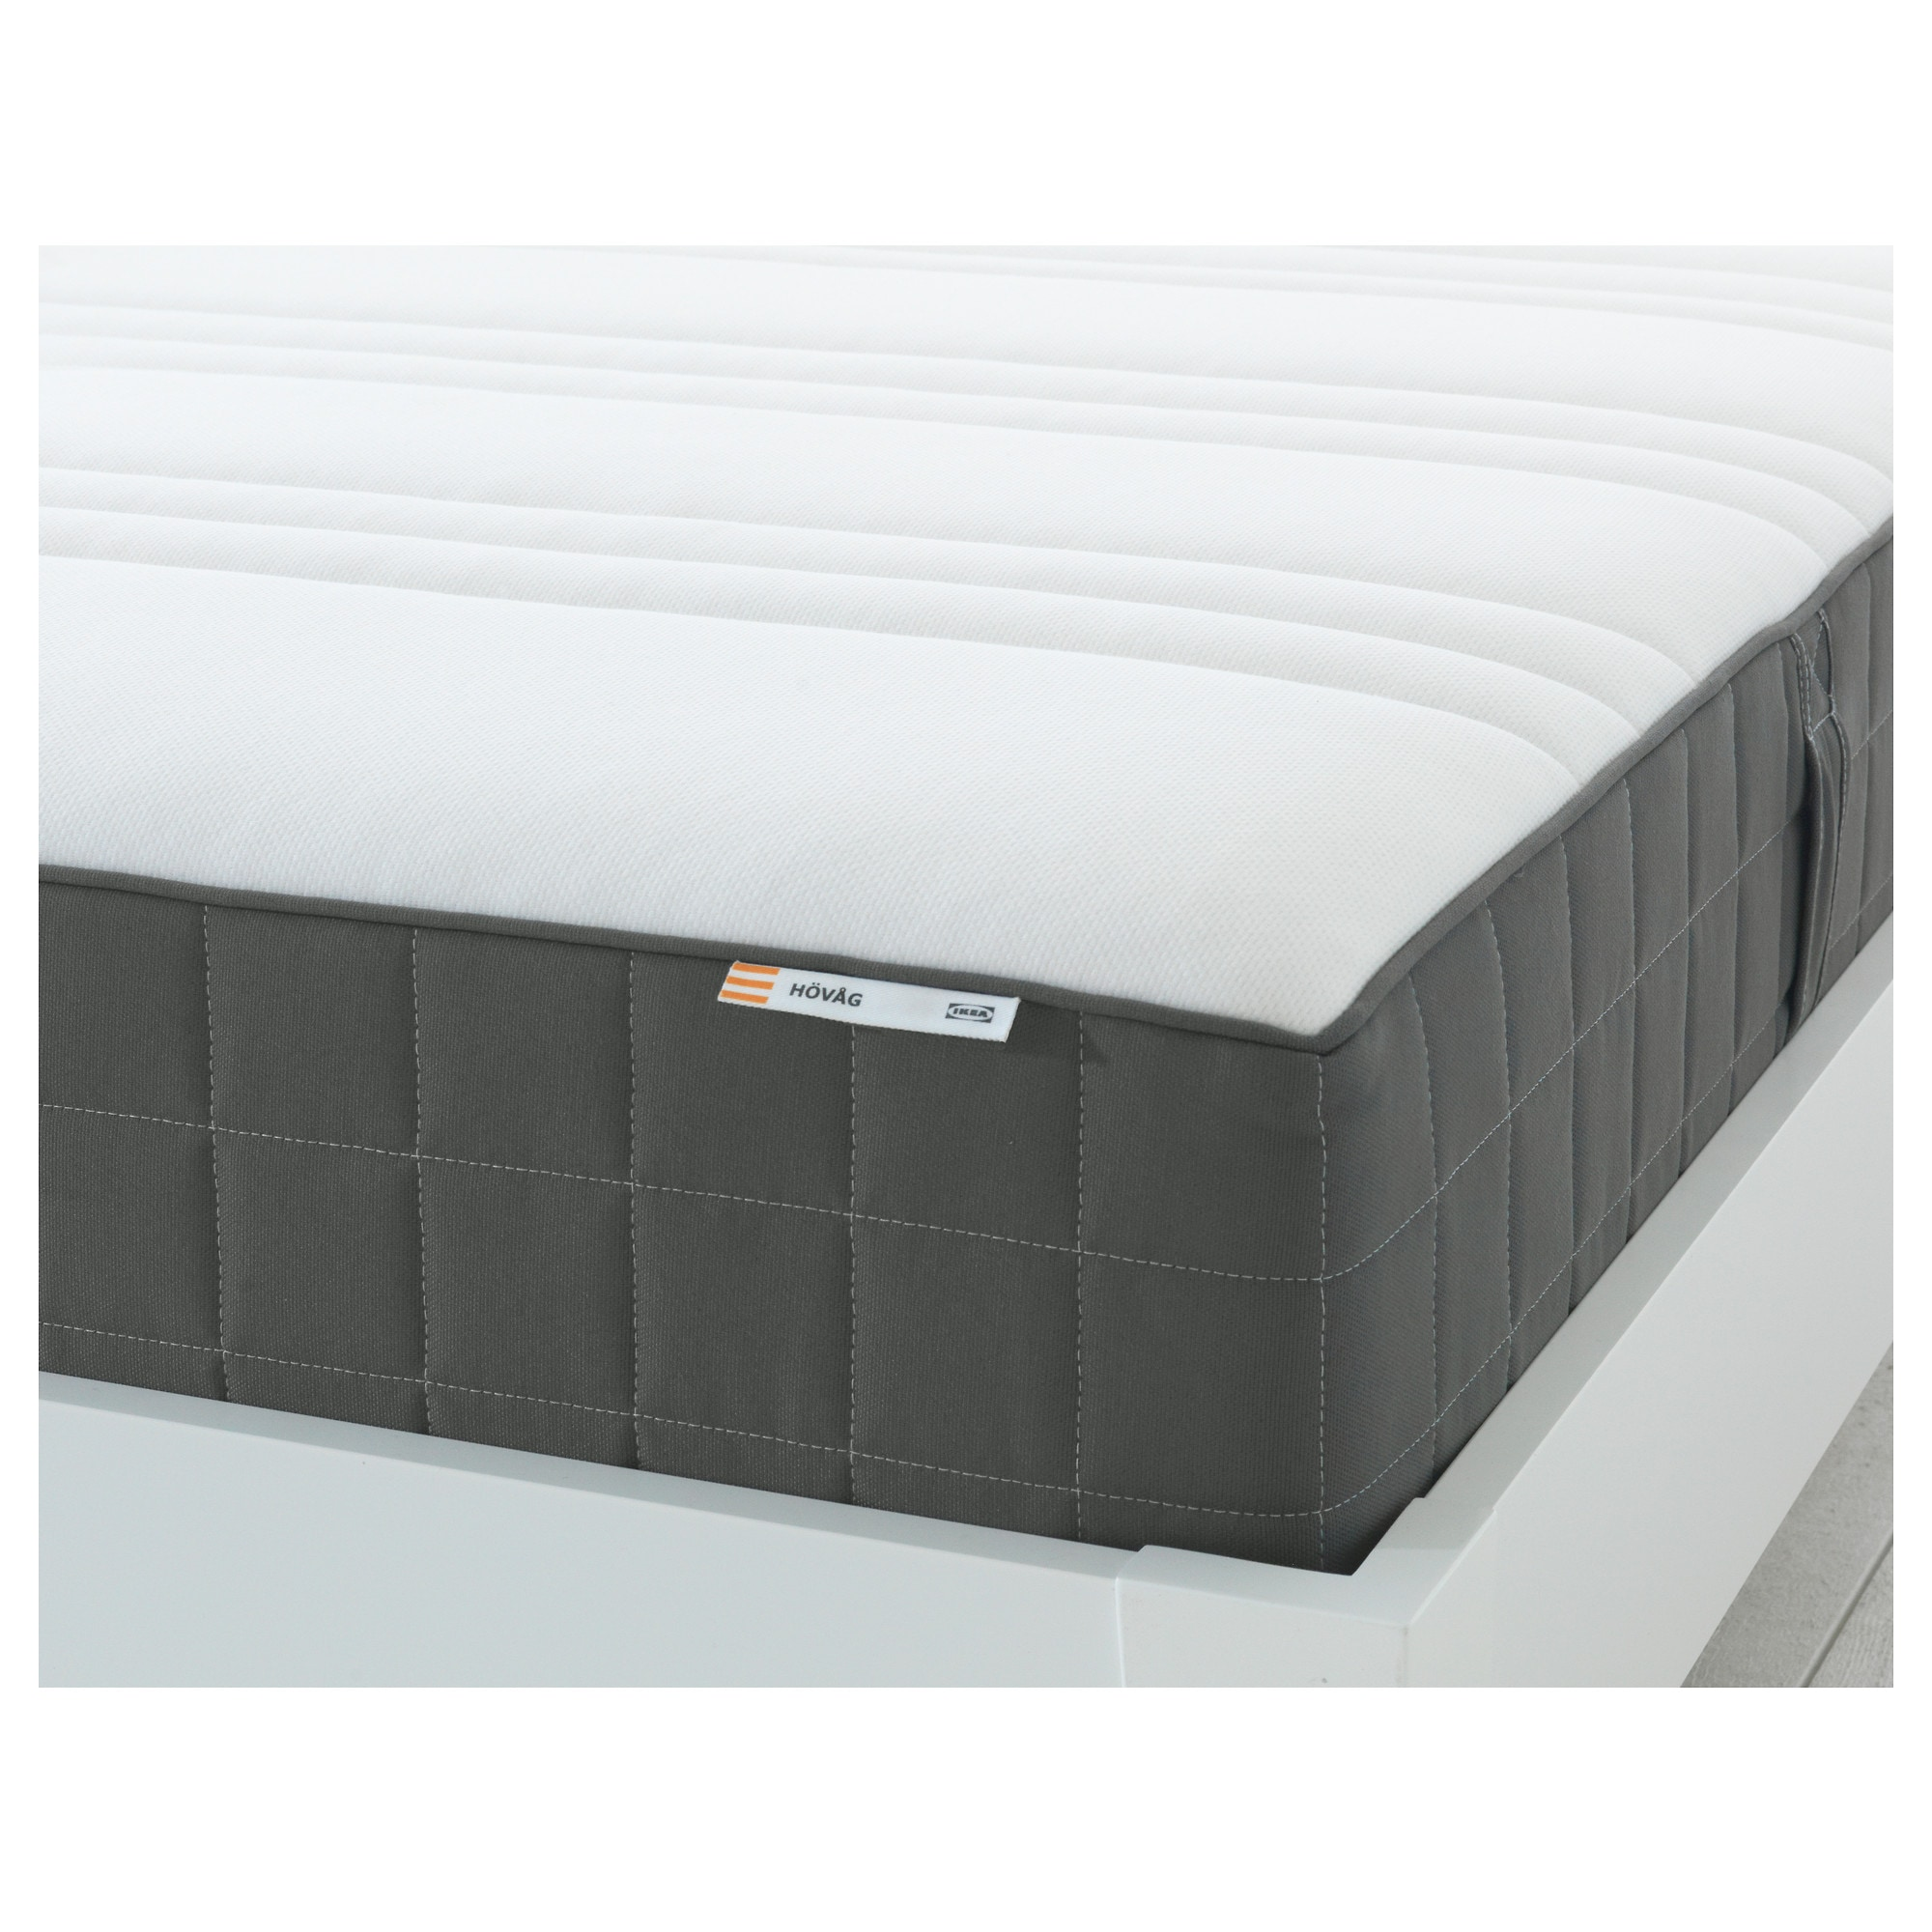 Hovag Mattress HÖvÅg Pocket Sprung Mattress Medium Firm Dark Grey